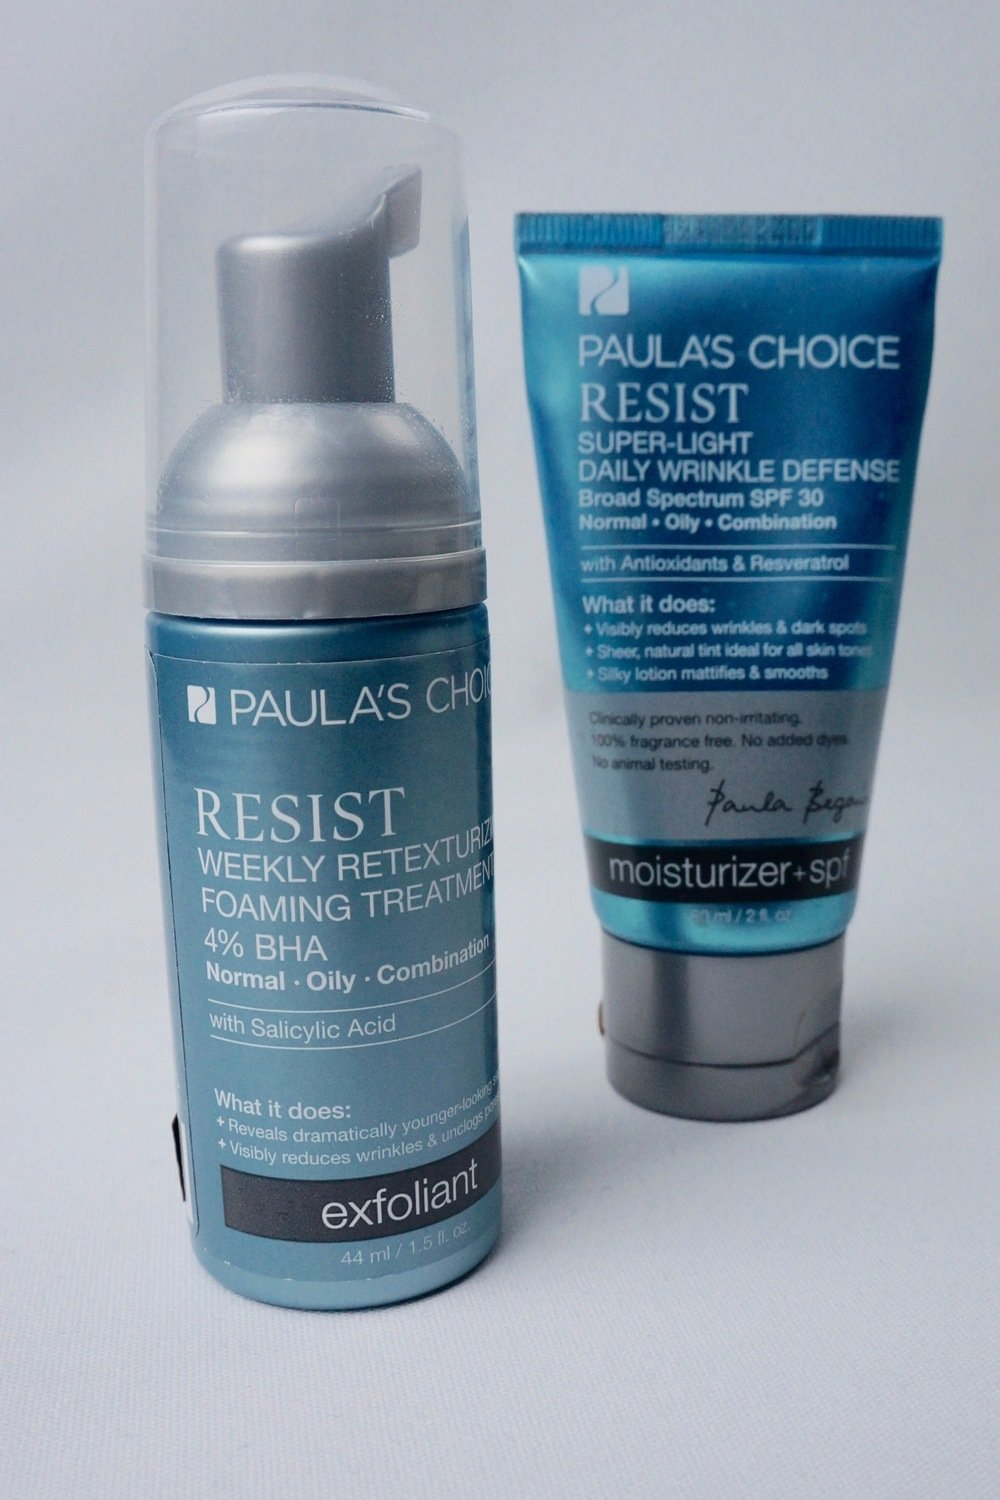 Paula's Choice Resist Super-Light Wrinkle Defense spf 30 'review' 2